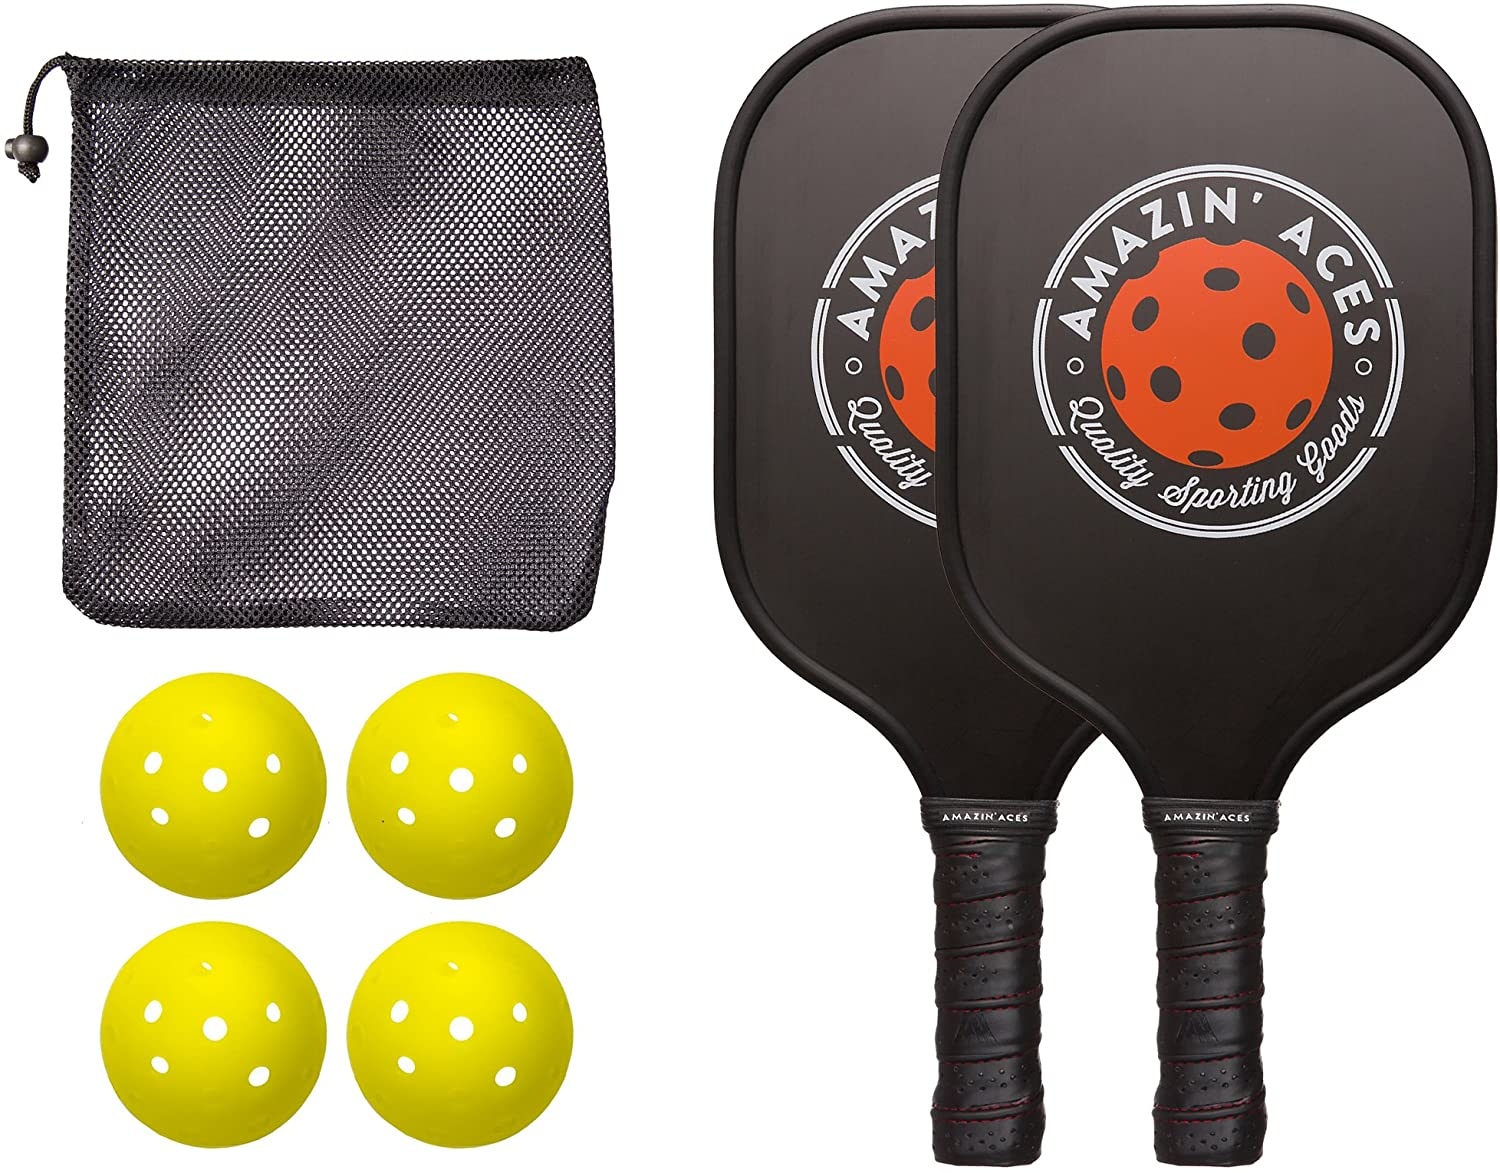 Amazin' Aces Pickleball Paddle Set